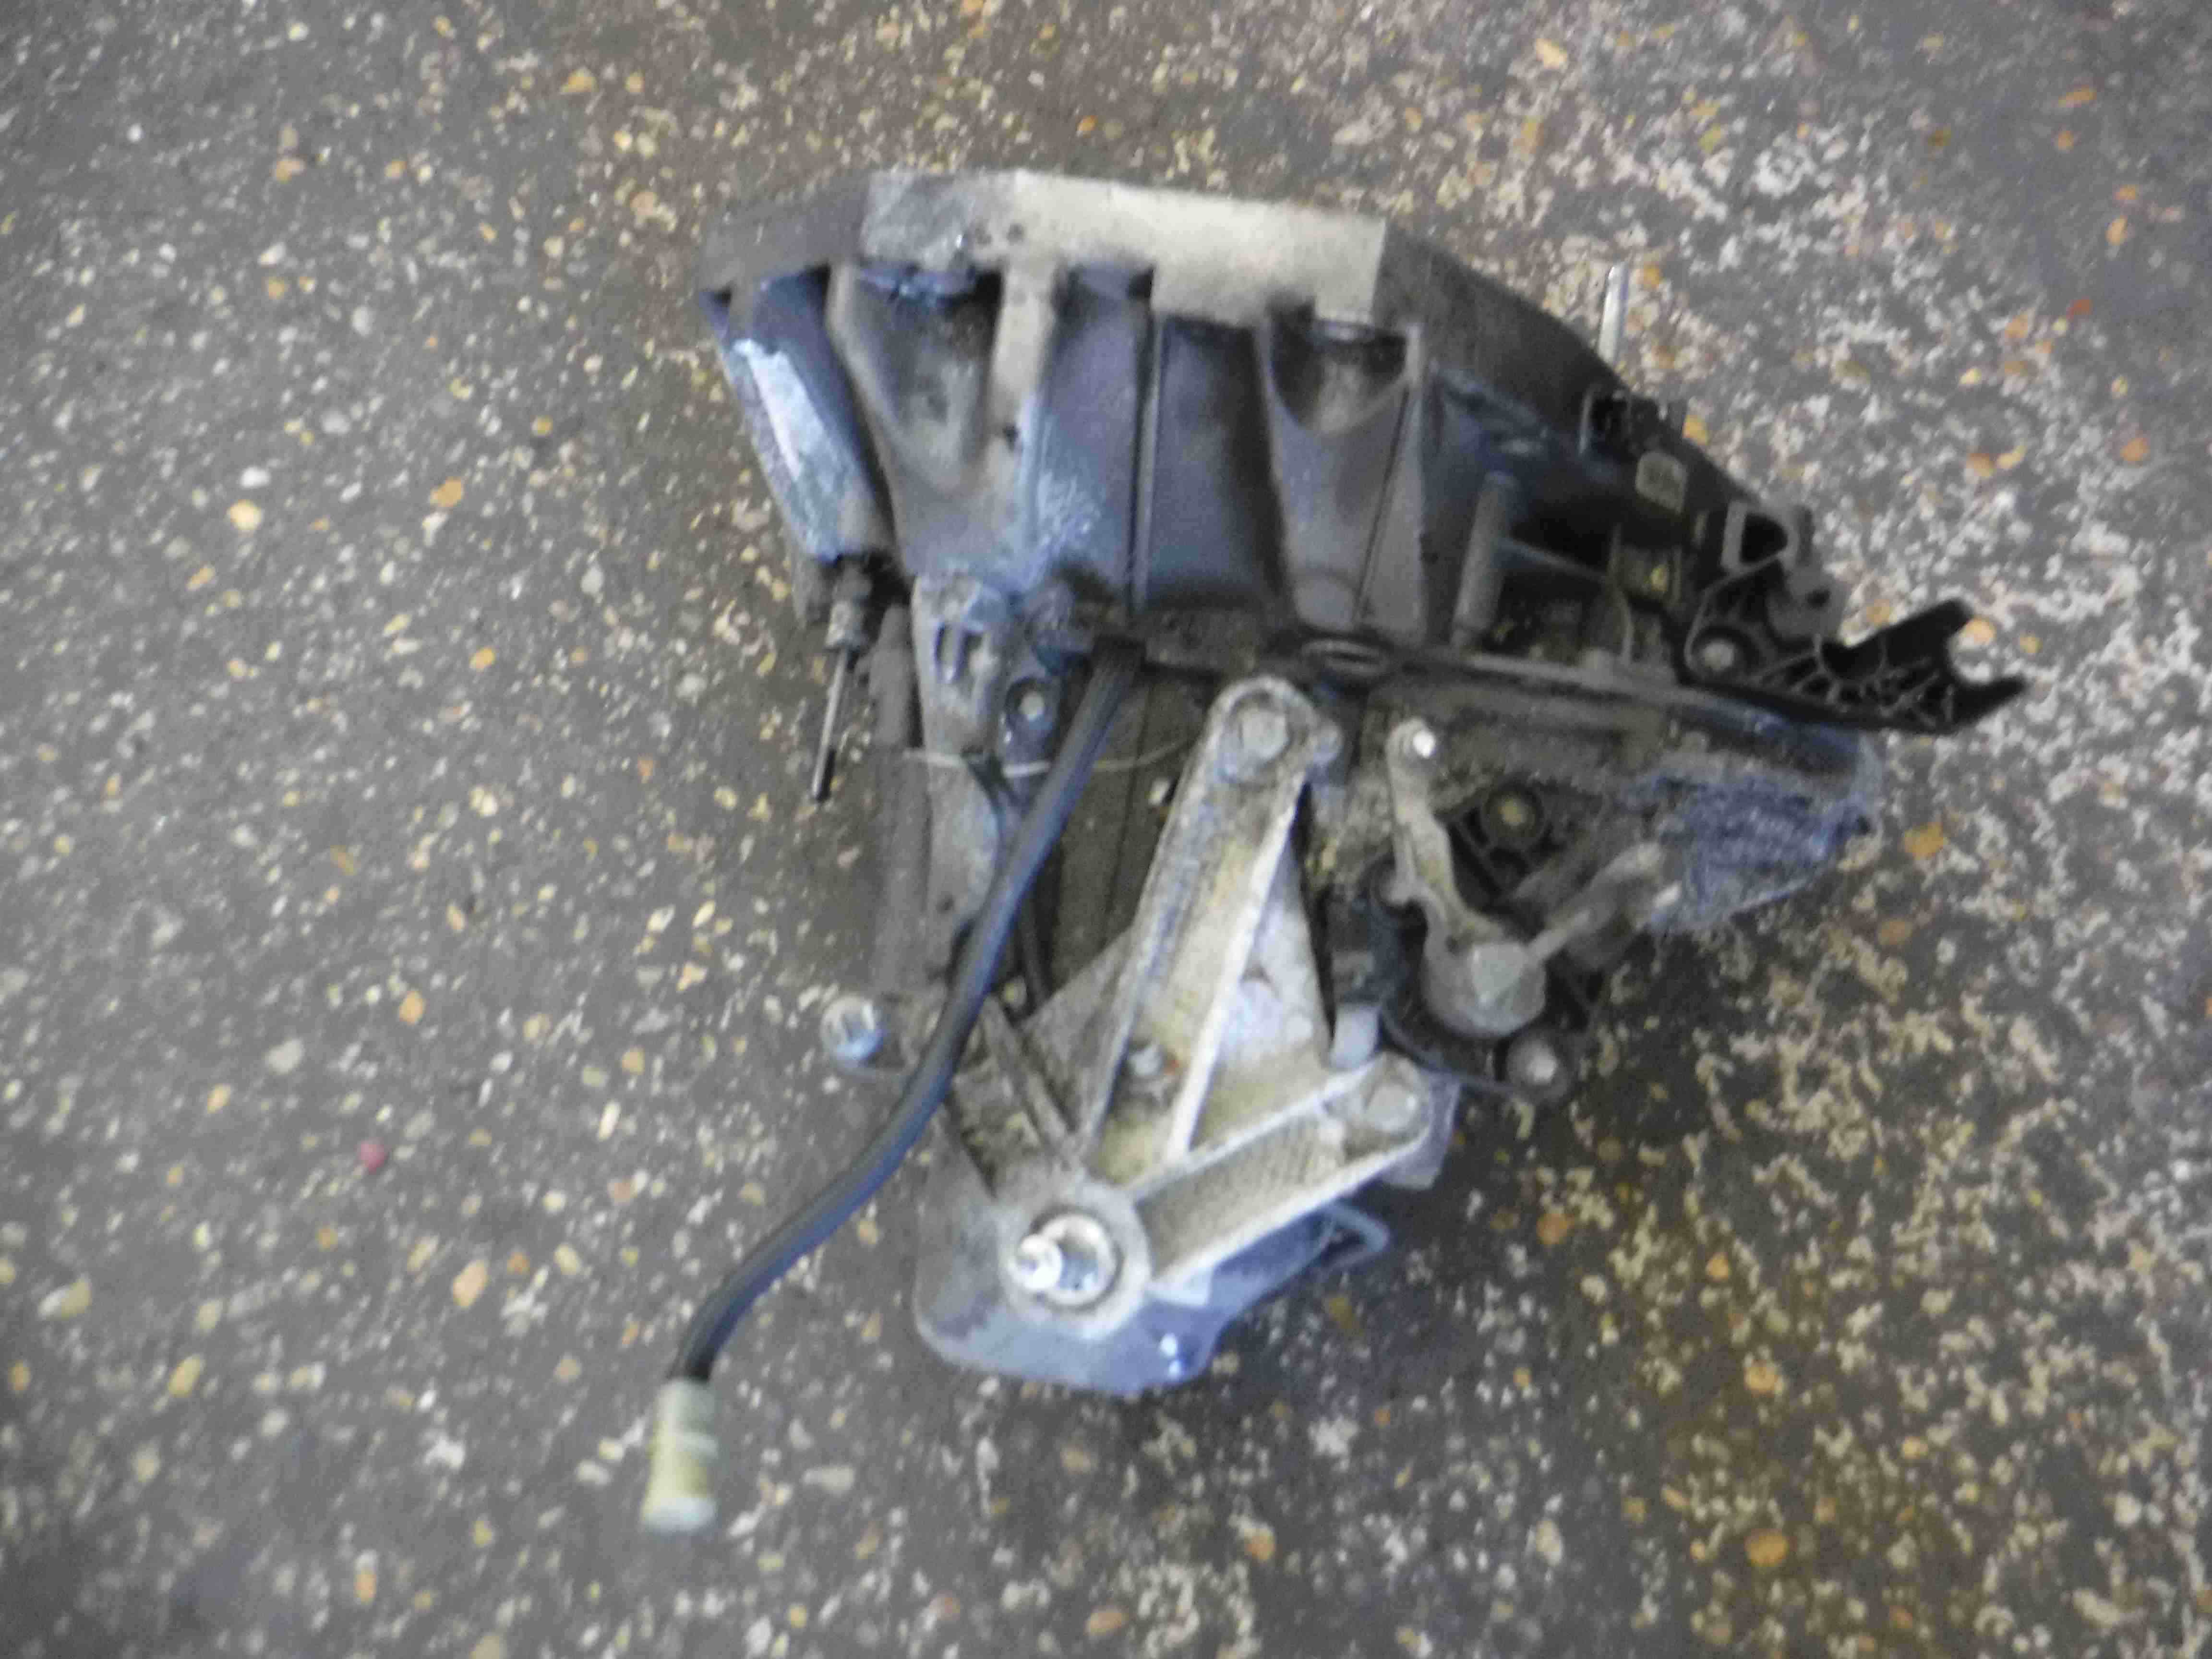 Renault Clio MK3 2005-2012 1.4 16v Gearbox JH3 173 JH3173